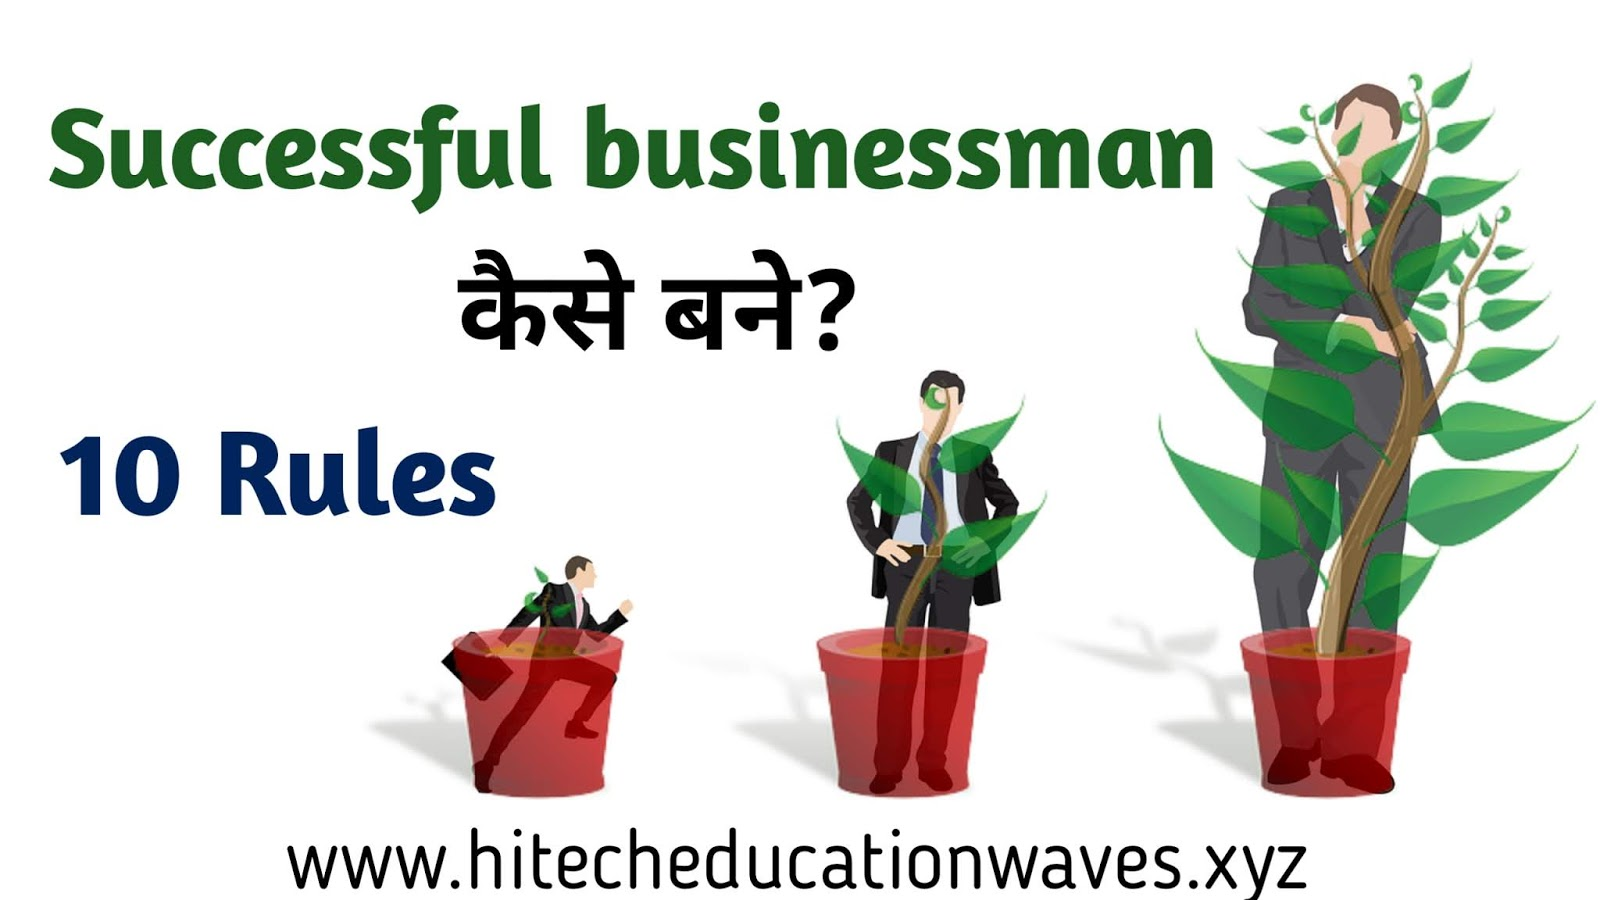 Successful businessman कैसे बने - 10 rules (How To Become A Successful Businessman In Hindi)